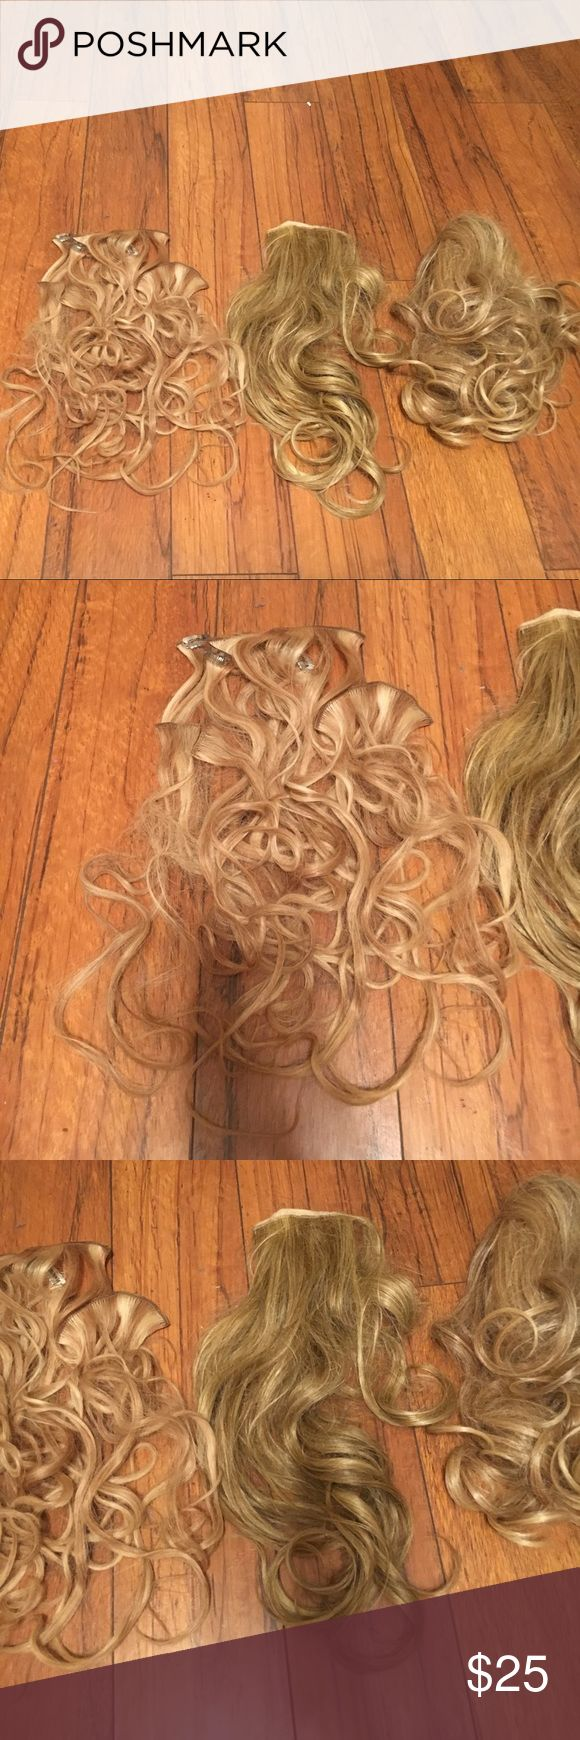 100% Human Hair Clip-On Extensions 100% Human Hair Clip-On Extensions. These are for blonde hair! Full set of clip-ons, ponytail piece, and large thickness piece all included. Make an offer!:) Accessories Hair Accessories